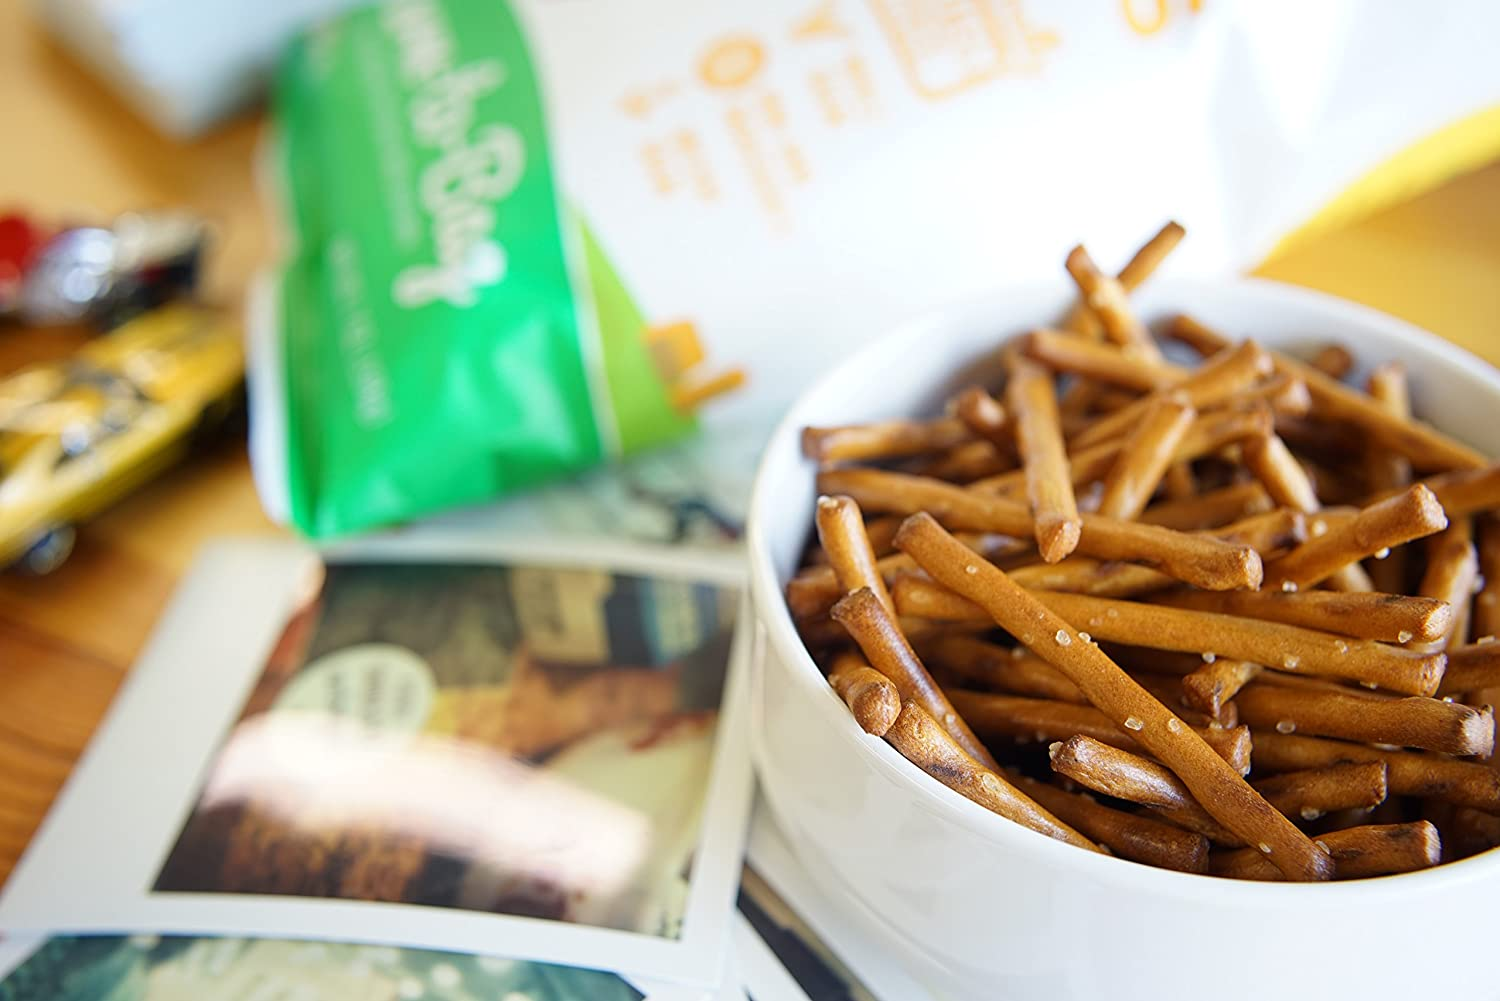 French Fries 2000 150 Gr Quinn Snacks Non Gmo And Gluten Free Pretzels Touch Of Honey 7 Ounce Grocery Gourmet Food